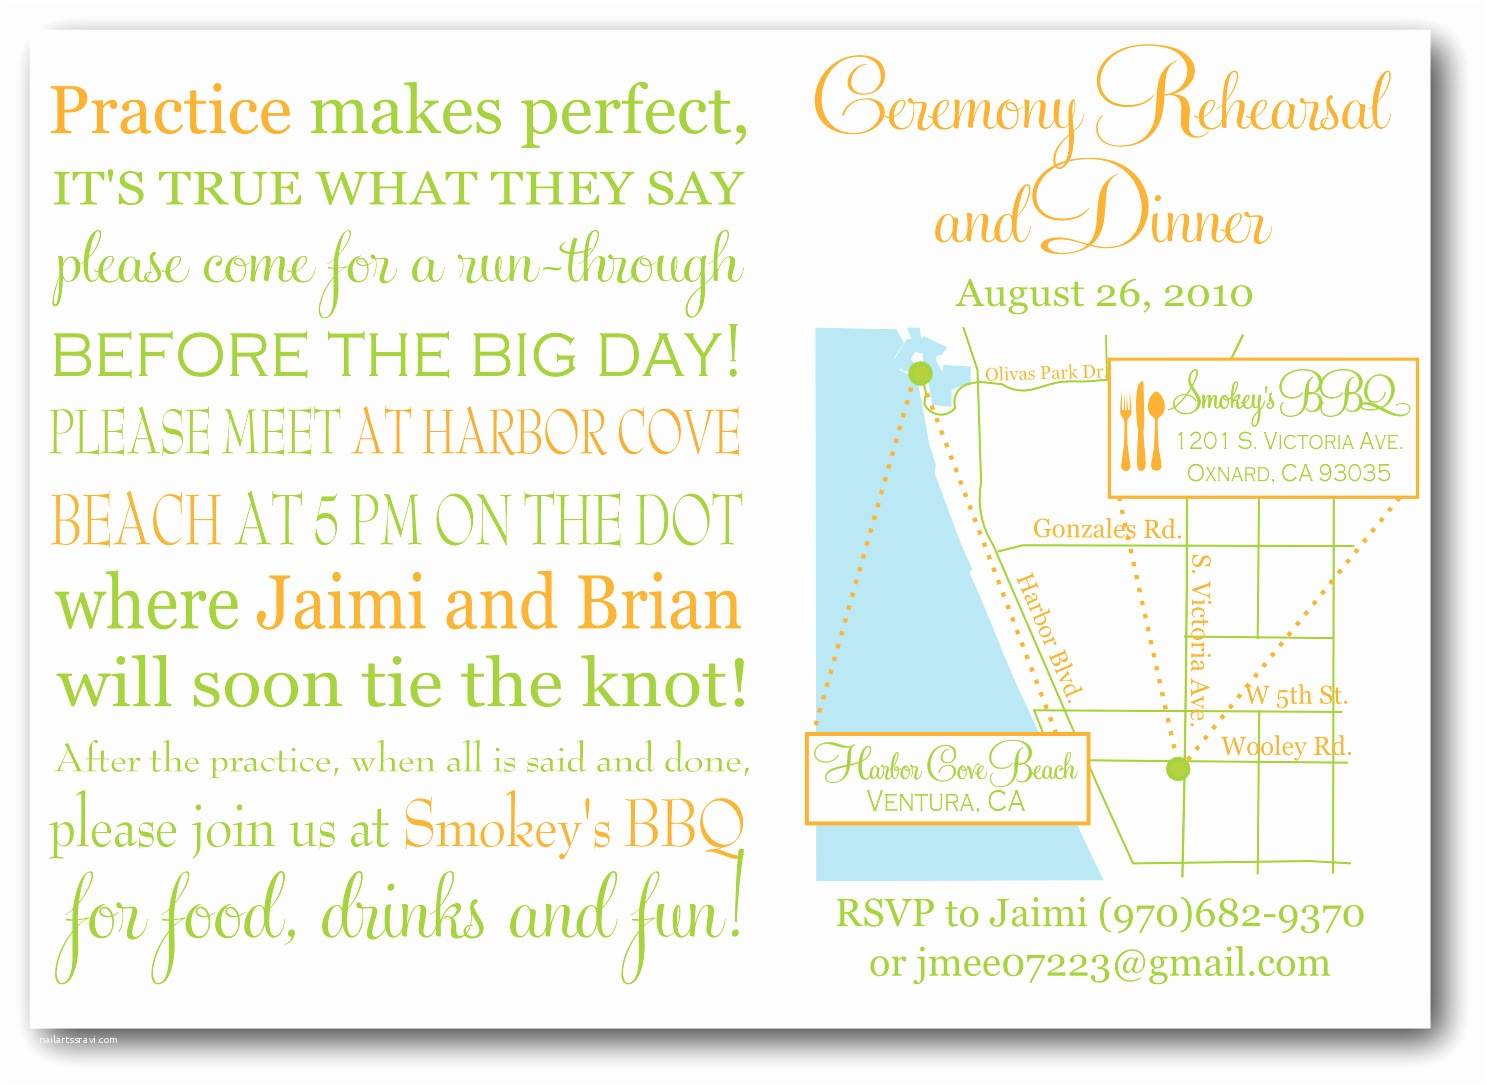 Wedding Rehearsal Dinner Invitation Wording Luxury White themed with Wedding Rehearsal Dinner